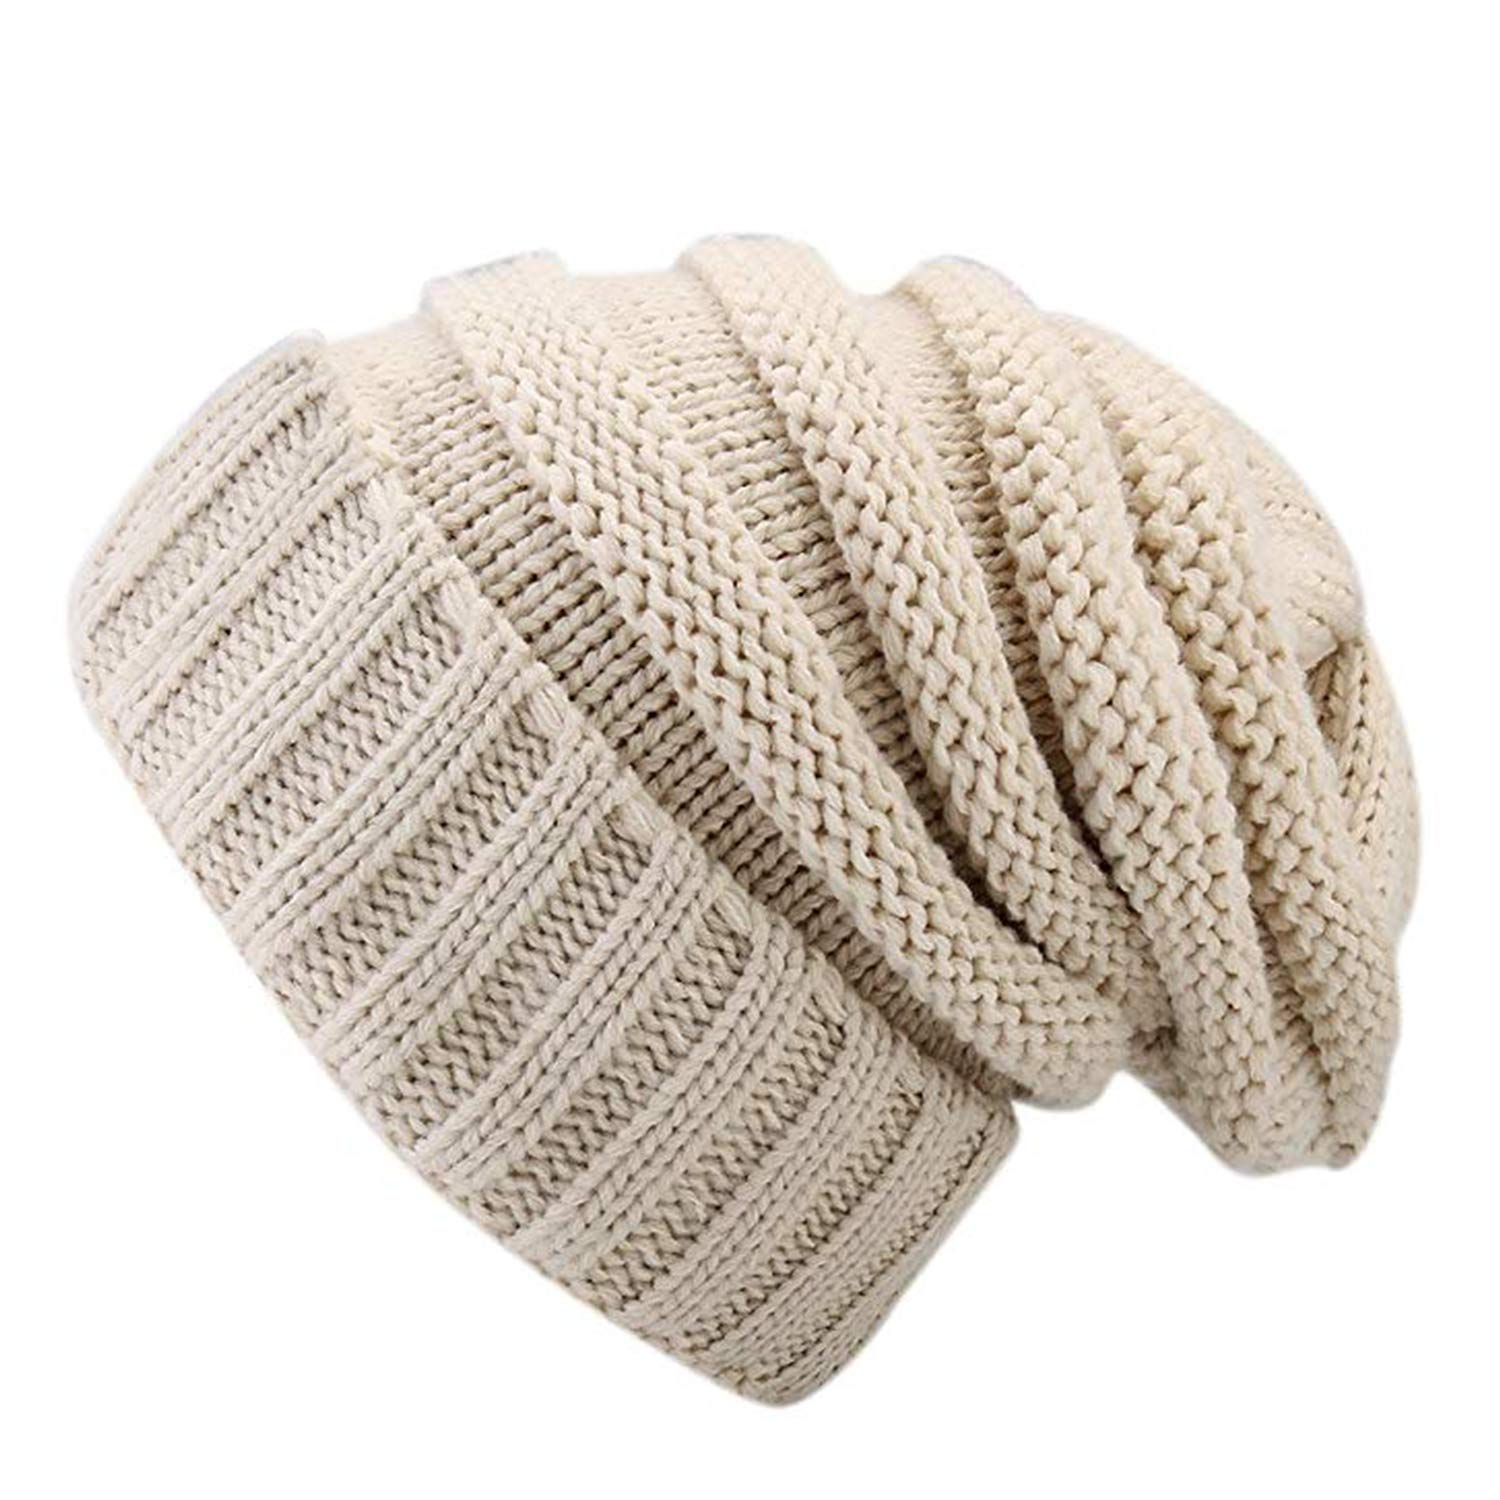 GAIBEST Stretch Cable Knit Beanie Tail - Thick Soft Warm for Women Men Chunky Hat Bobble Hat Ski Cap